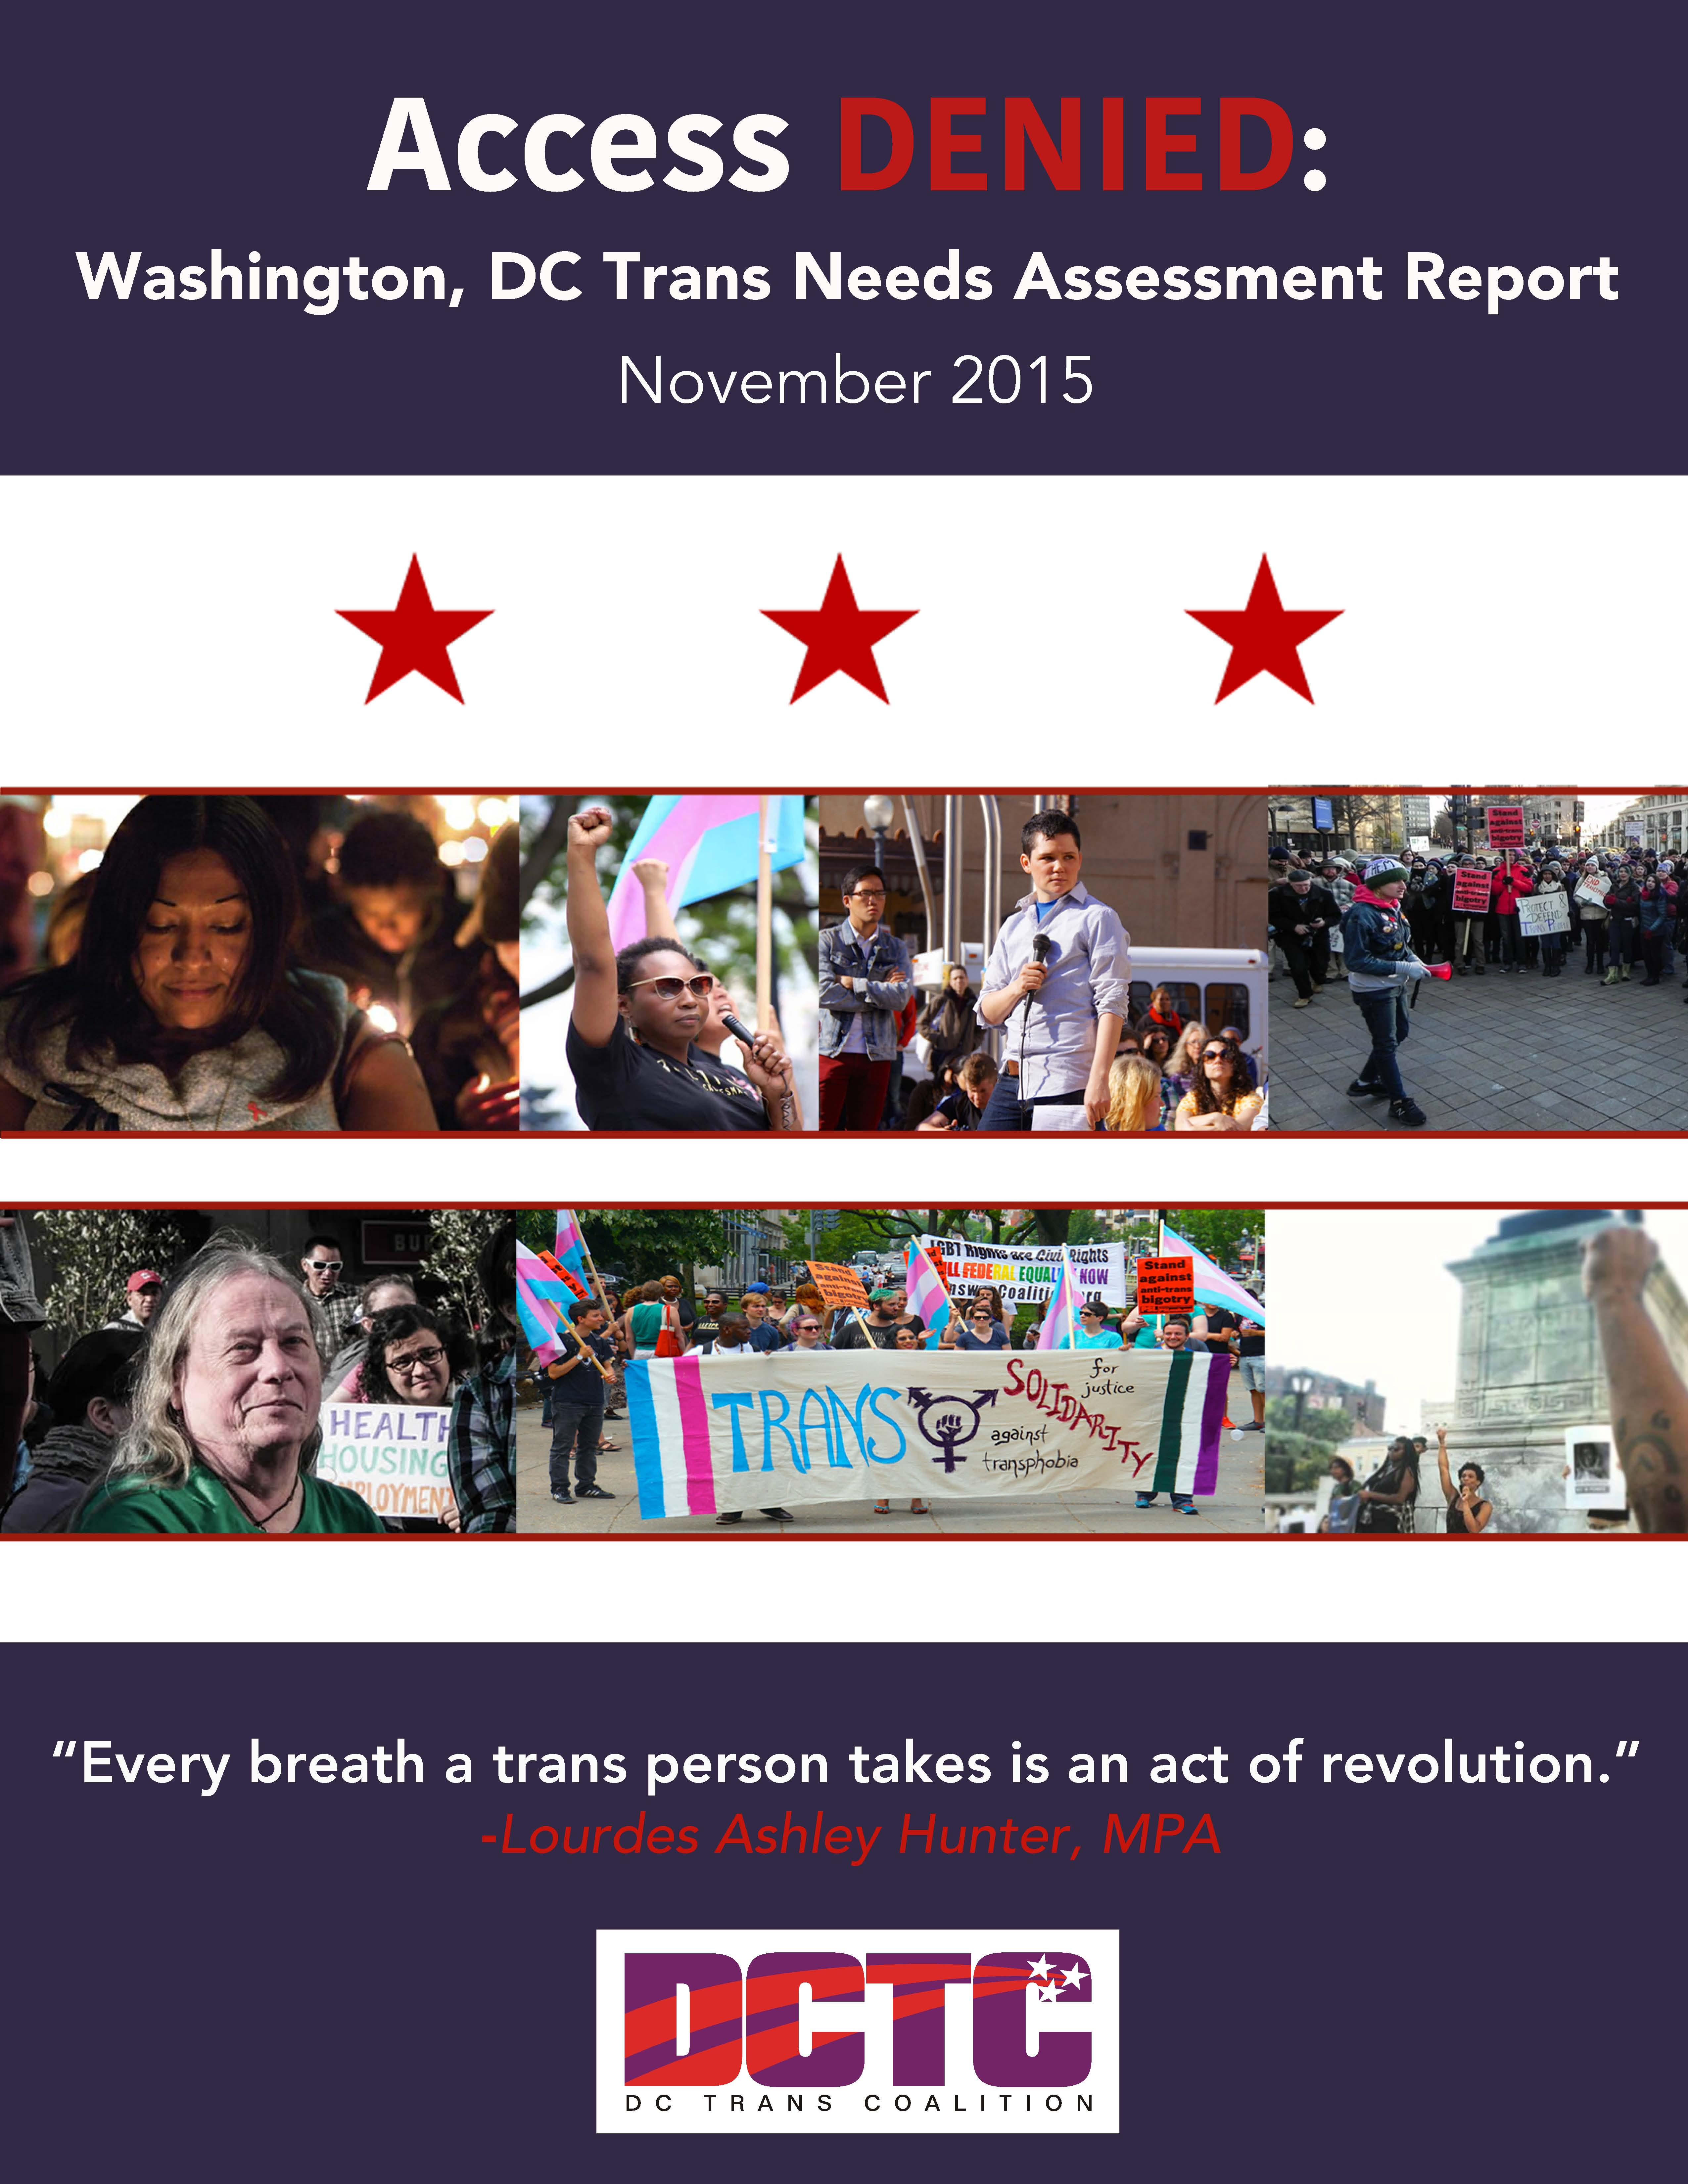 gaydek.net 8 of image Check it out! Access Denied: Washington, DC Trans Needs Assessment Report